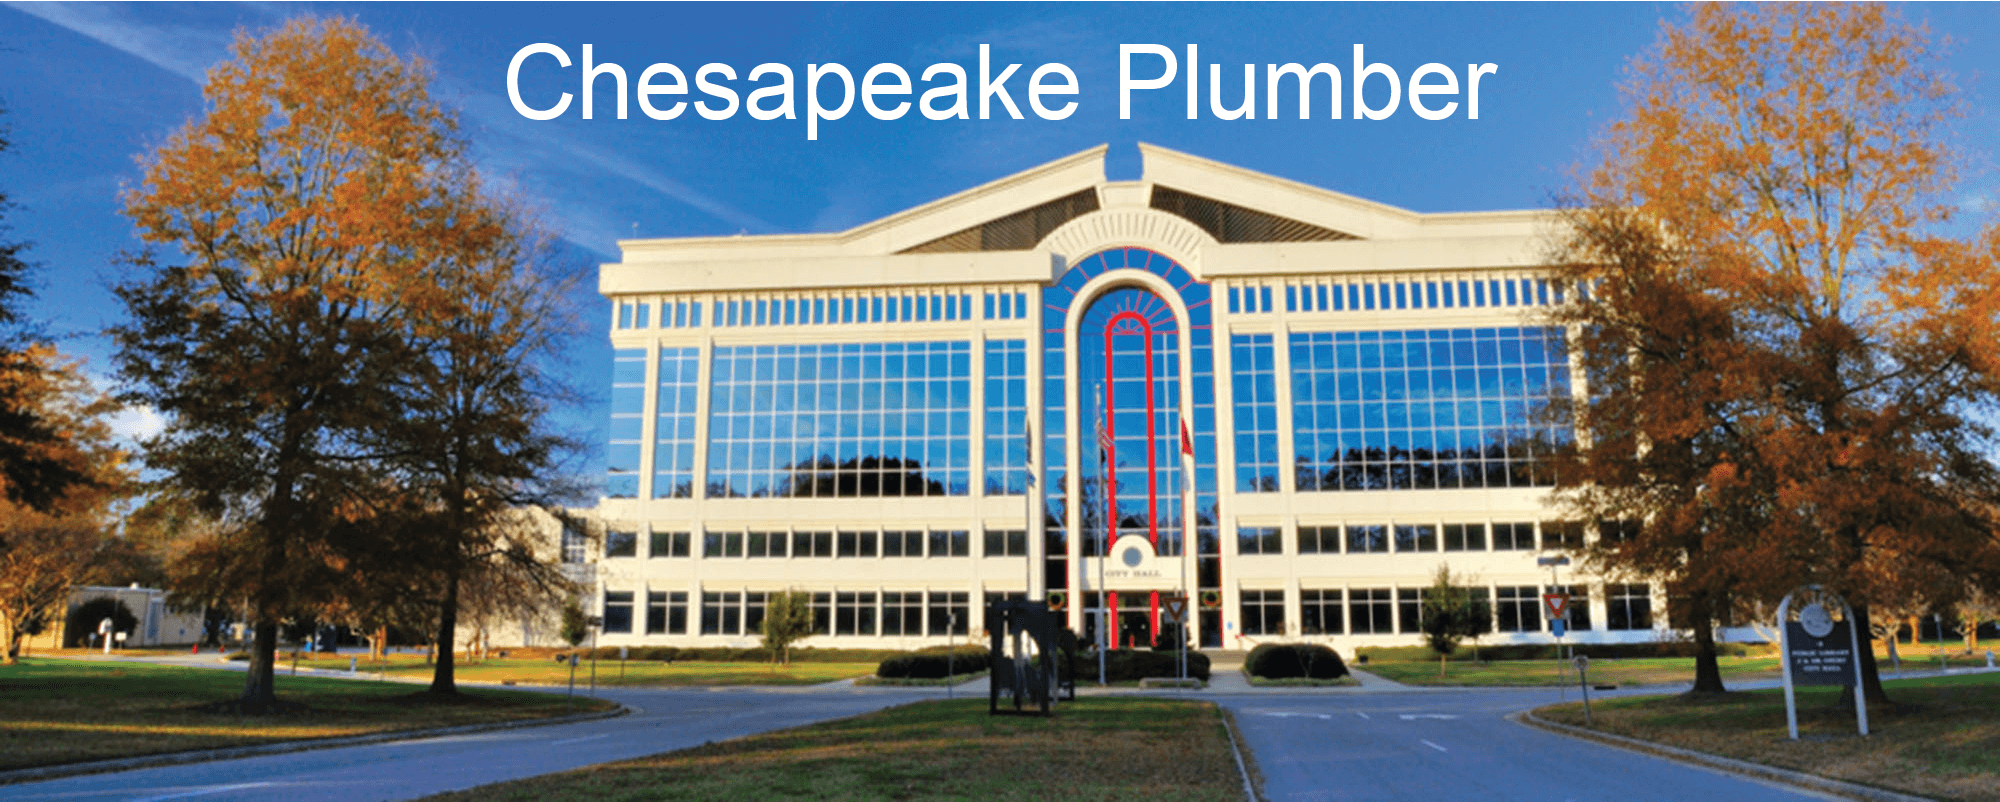 Chesapeake Plumber